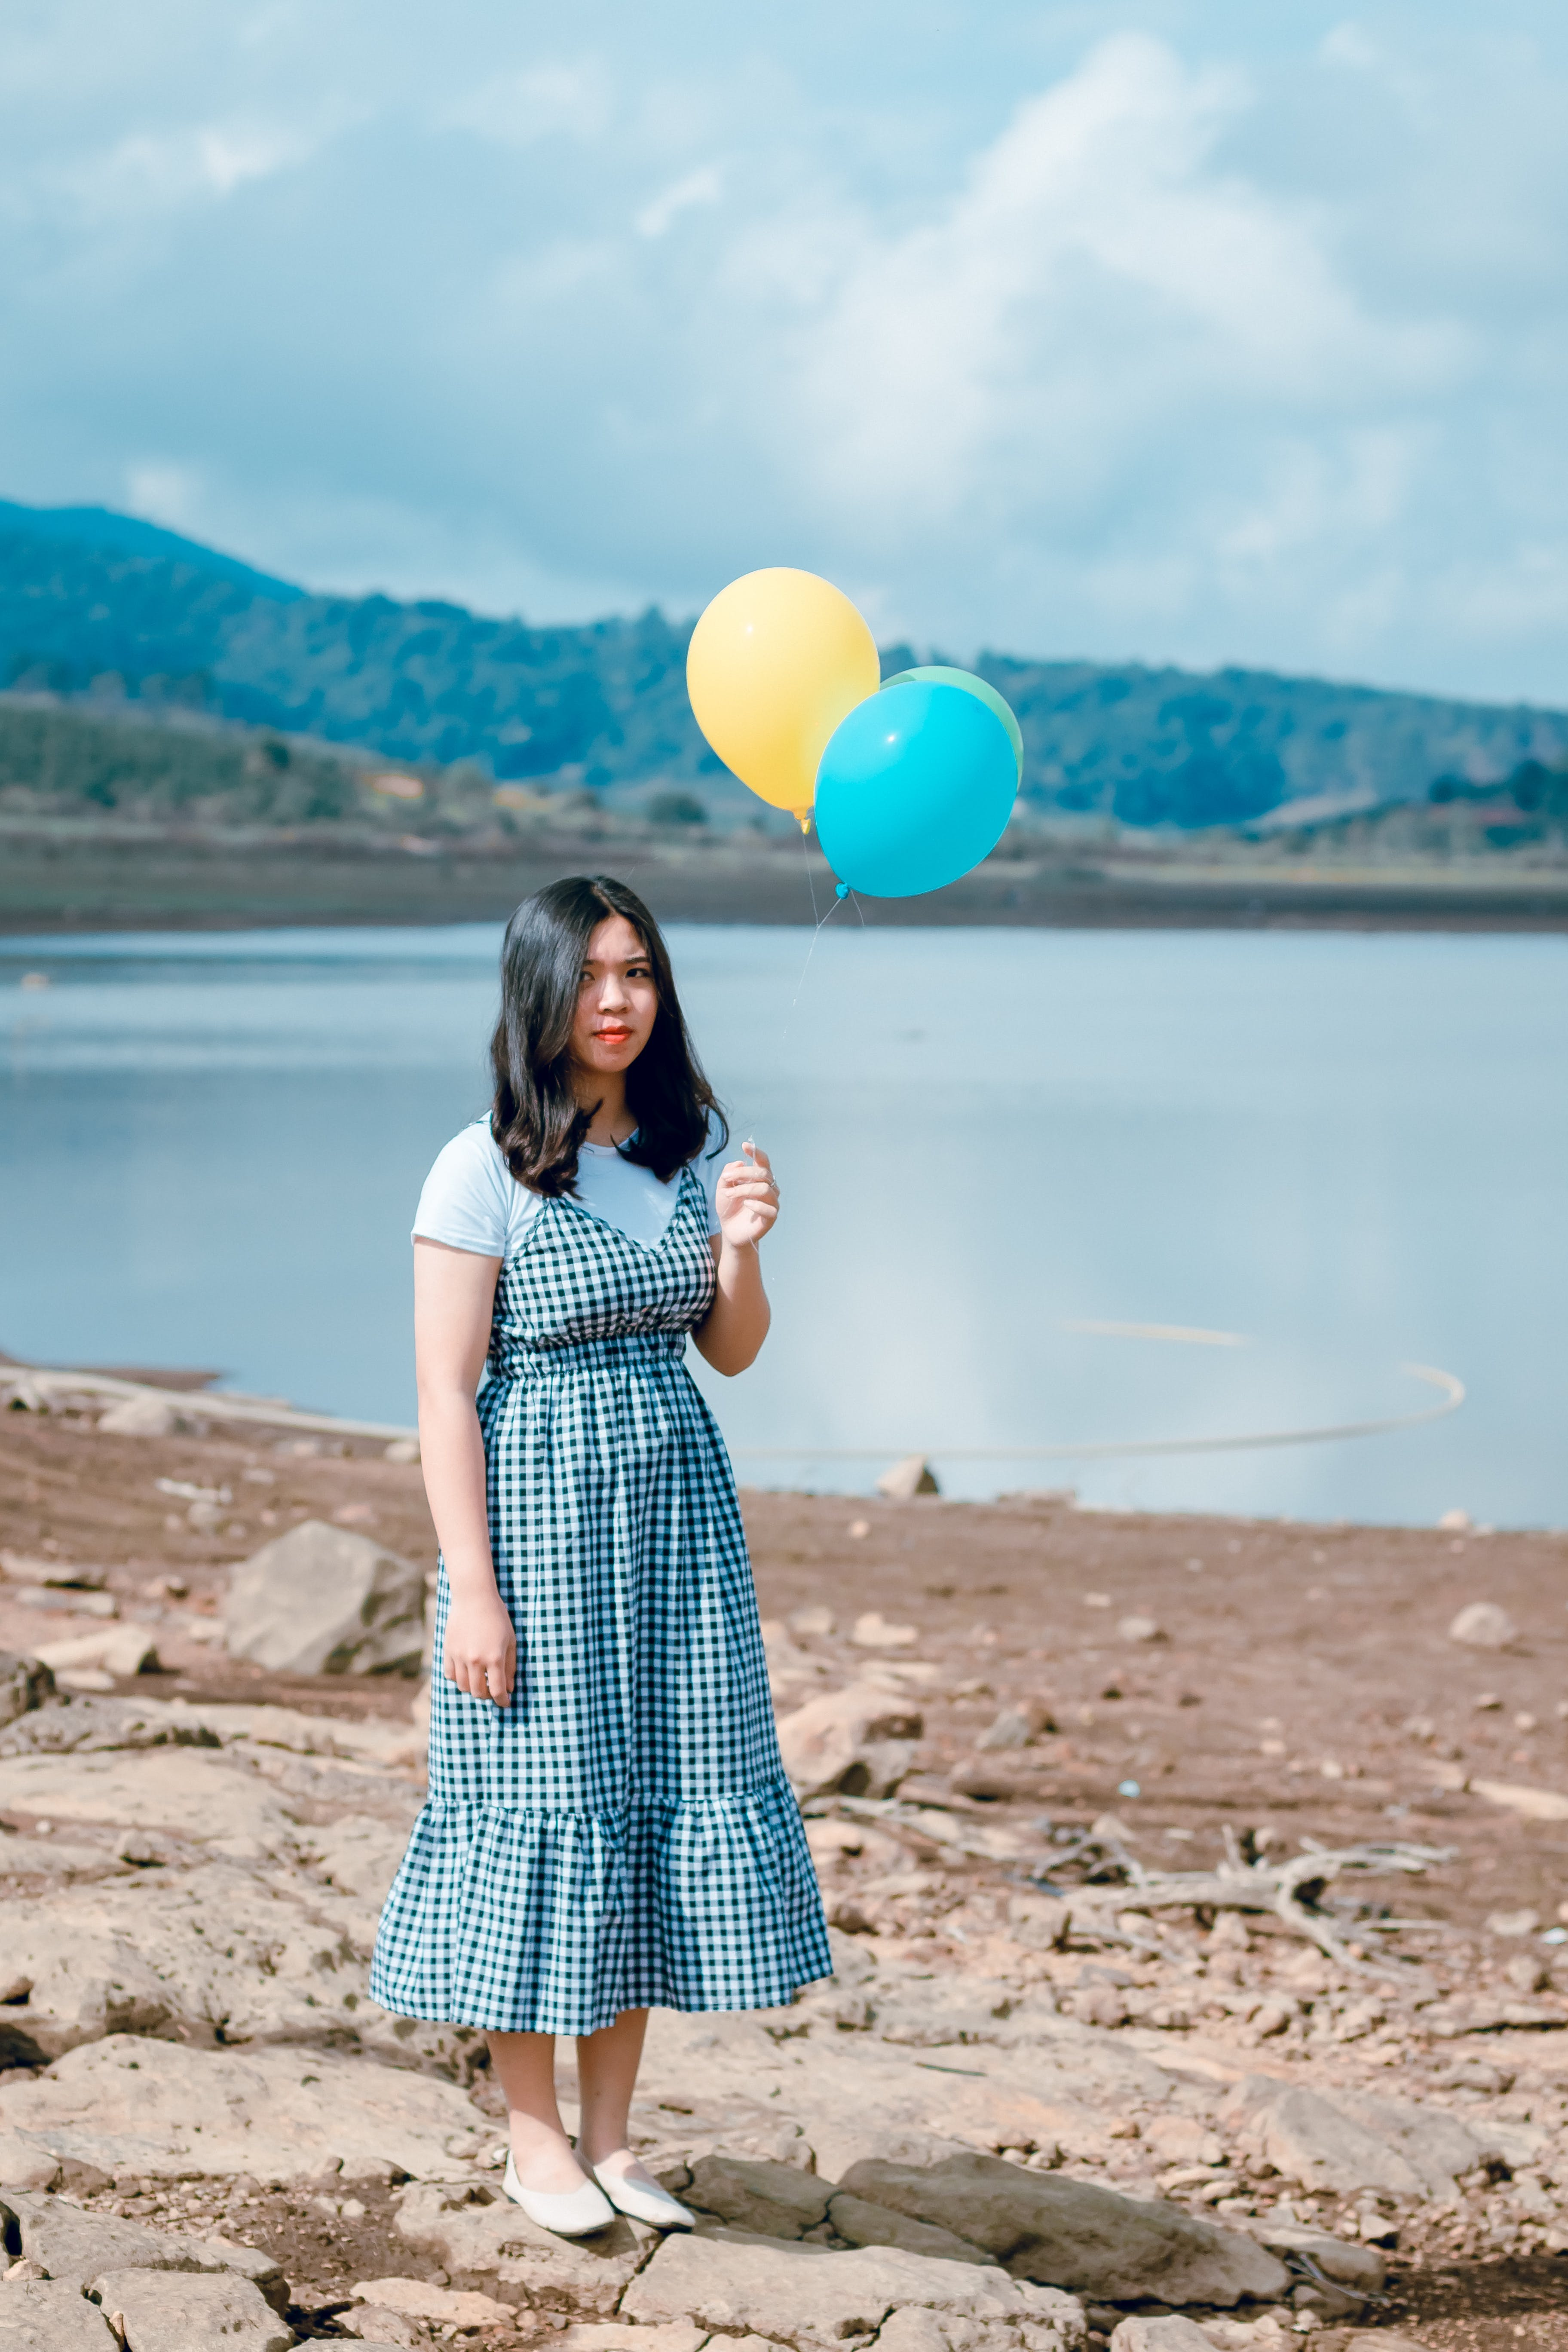 Woman in White and Black Dress Stands While Holding Party Balloons